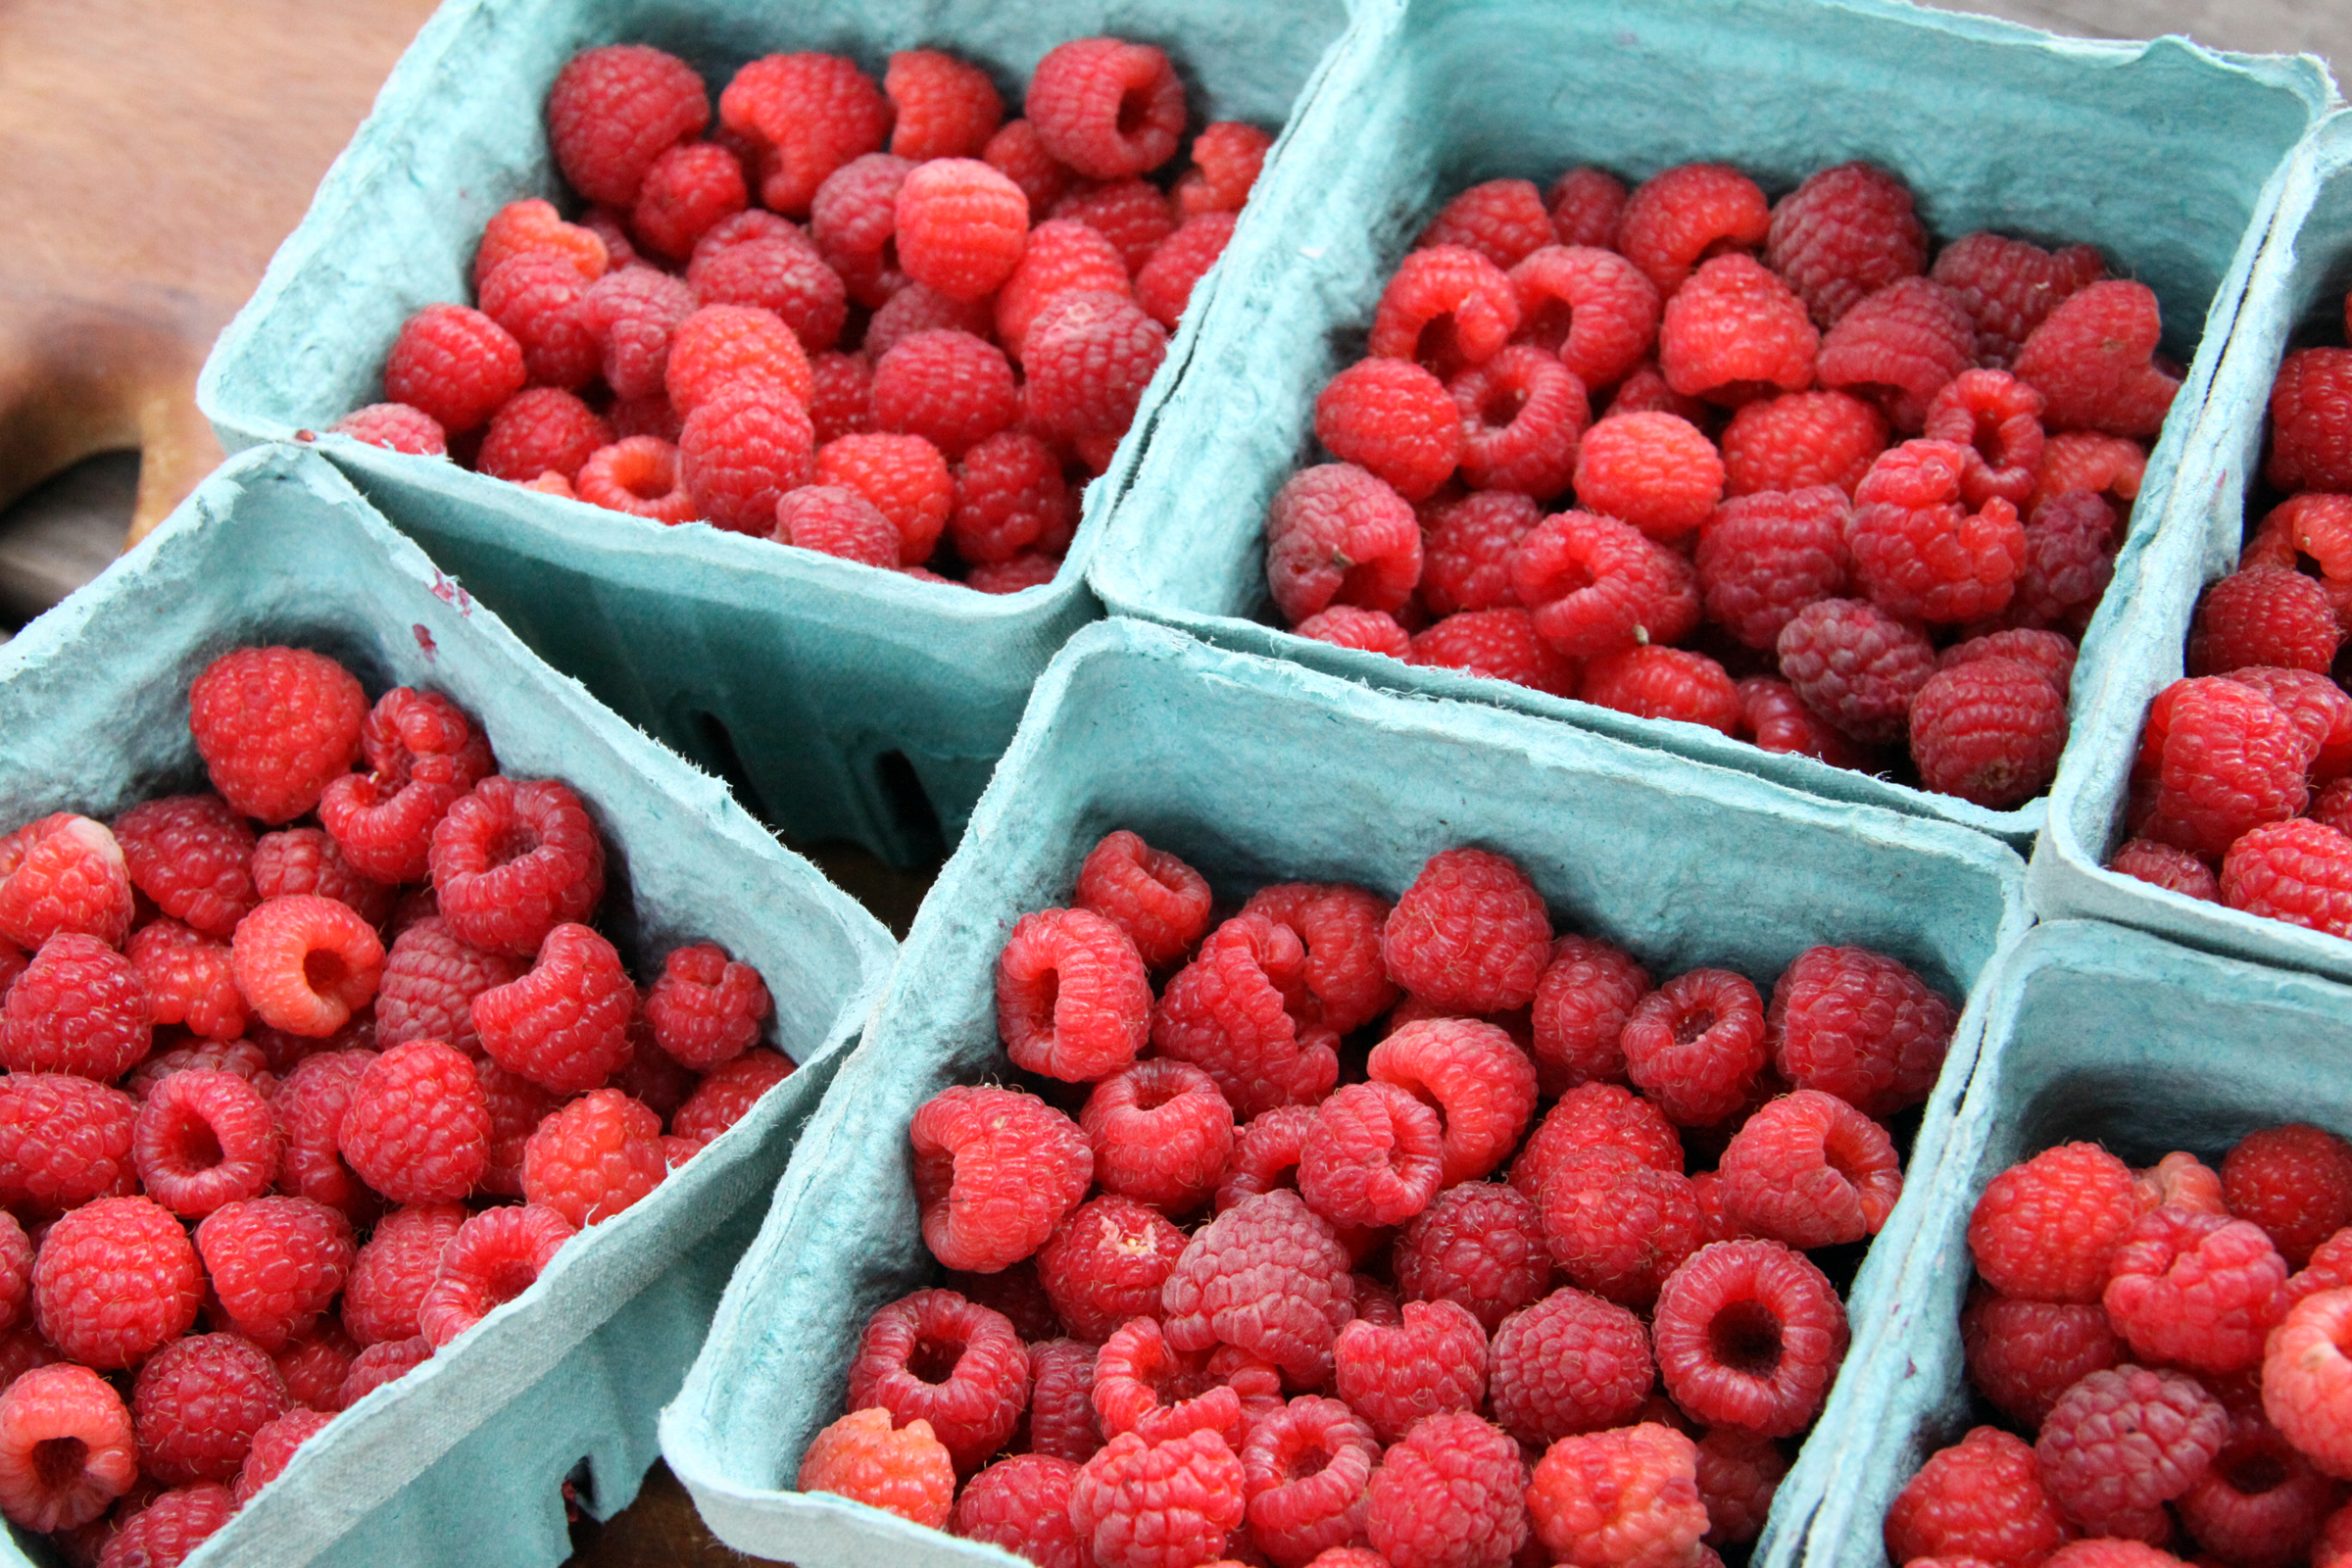 Copy of Raspberries